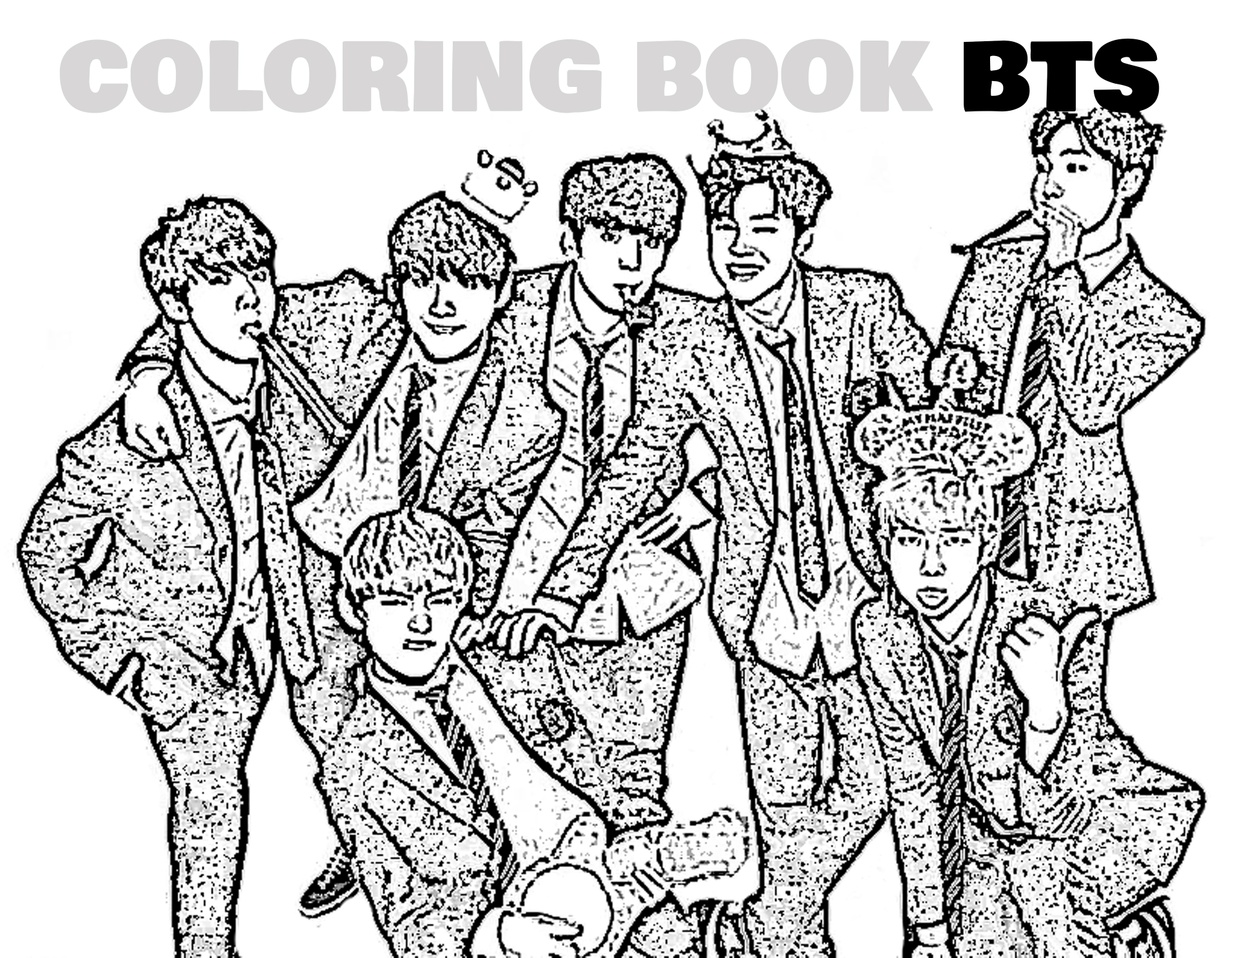 Coloring Book Kpop BTS | Kpoplicious - Sellfy.com